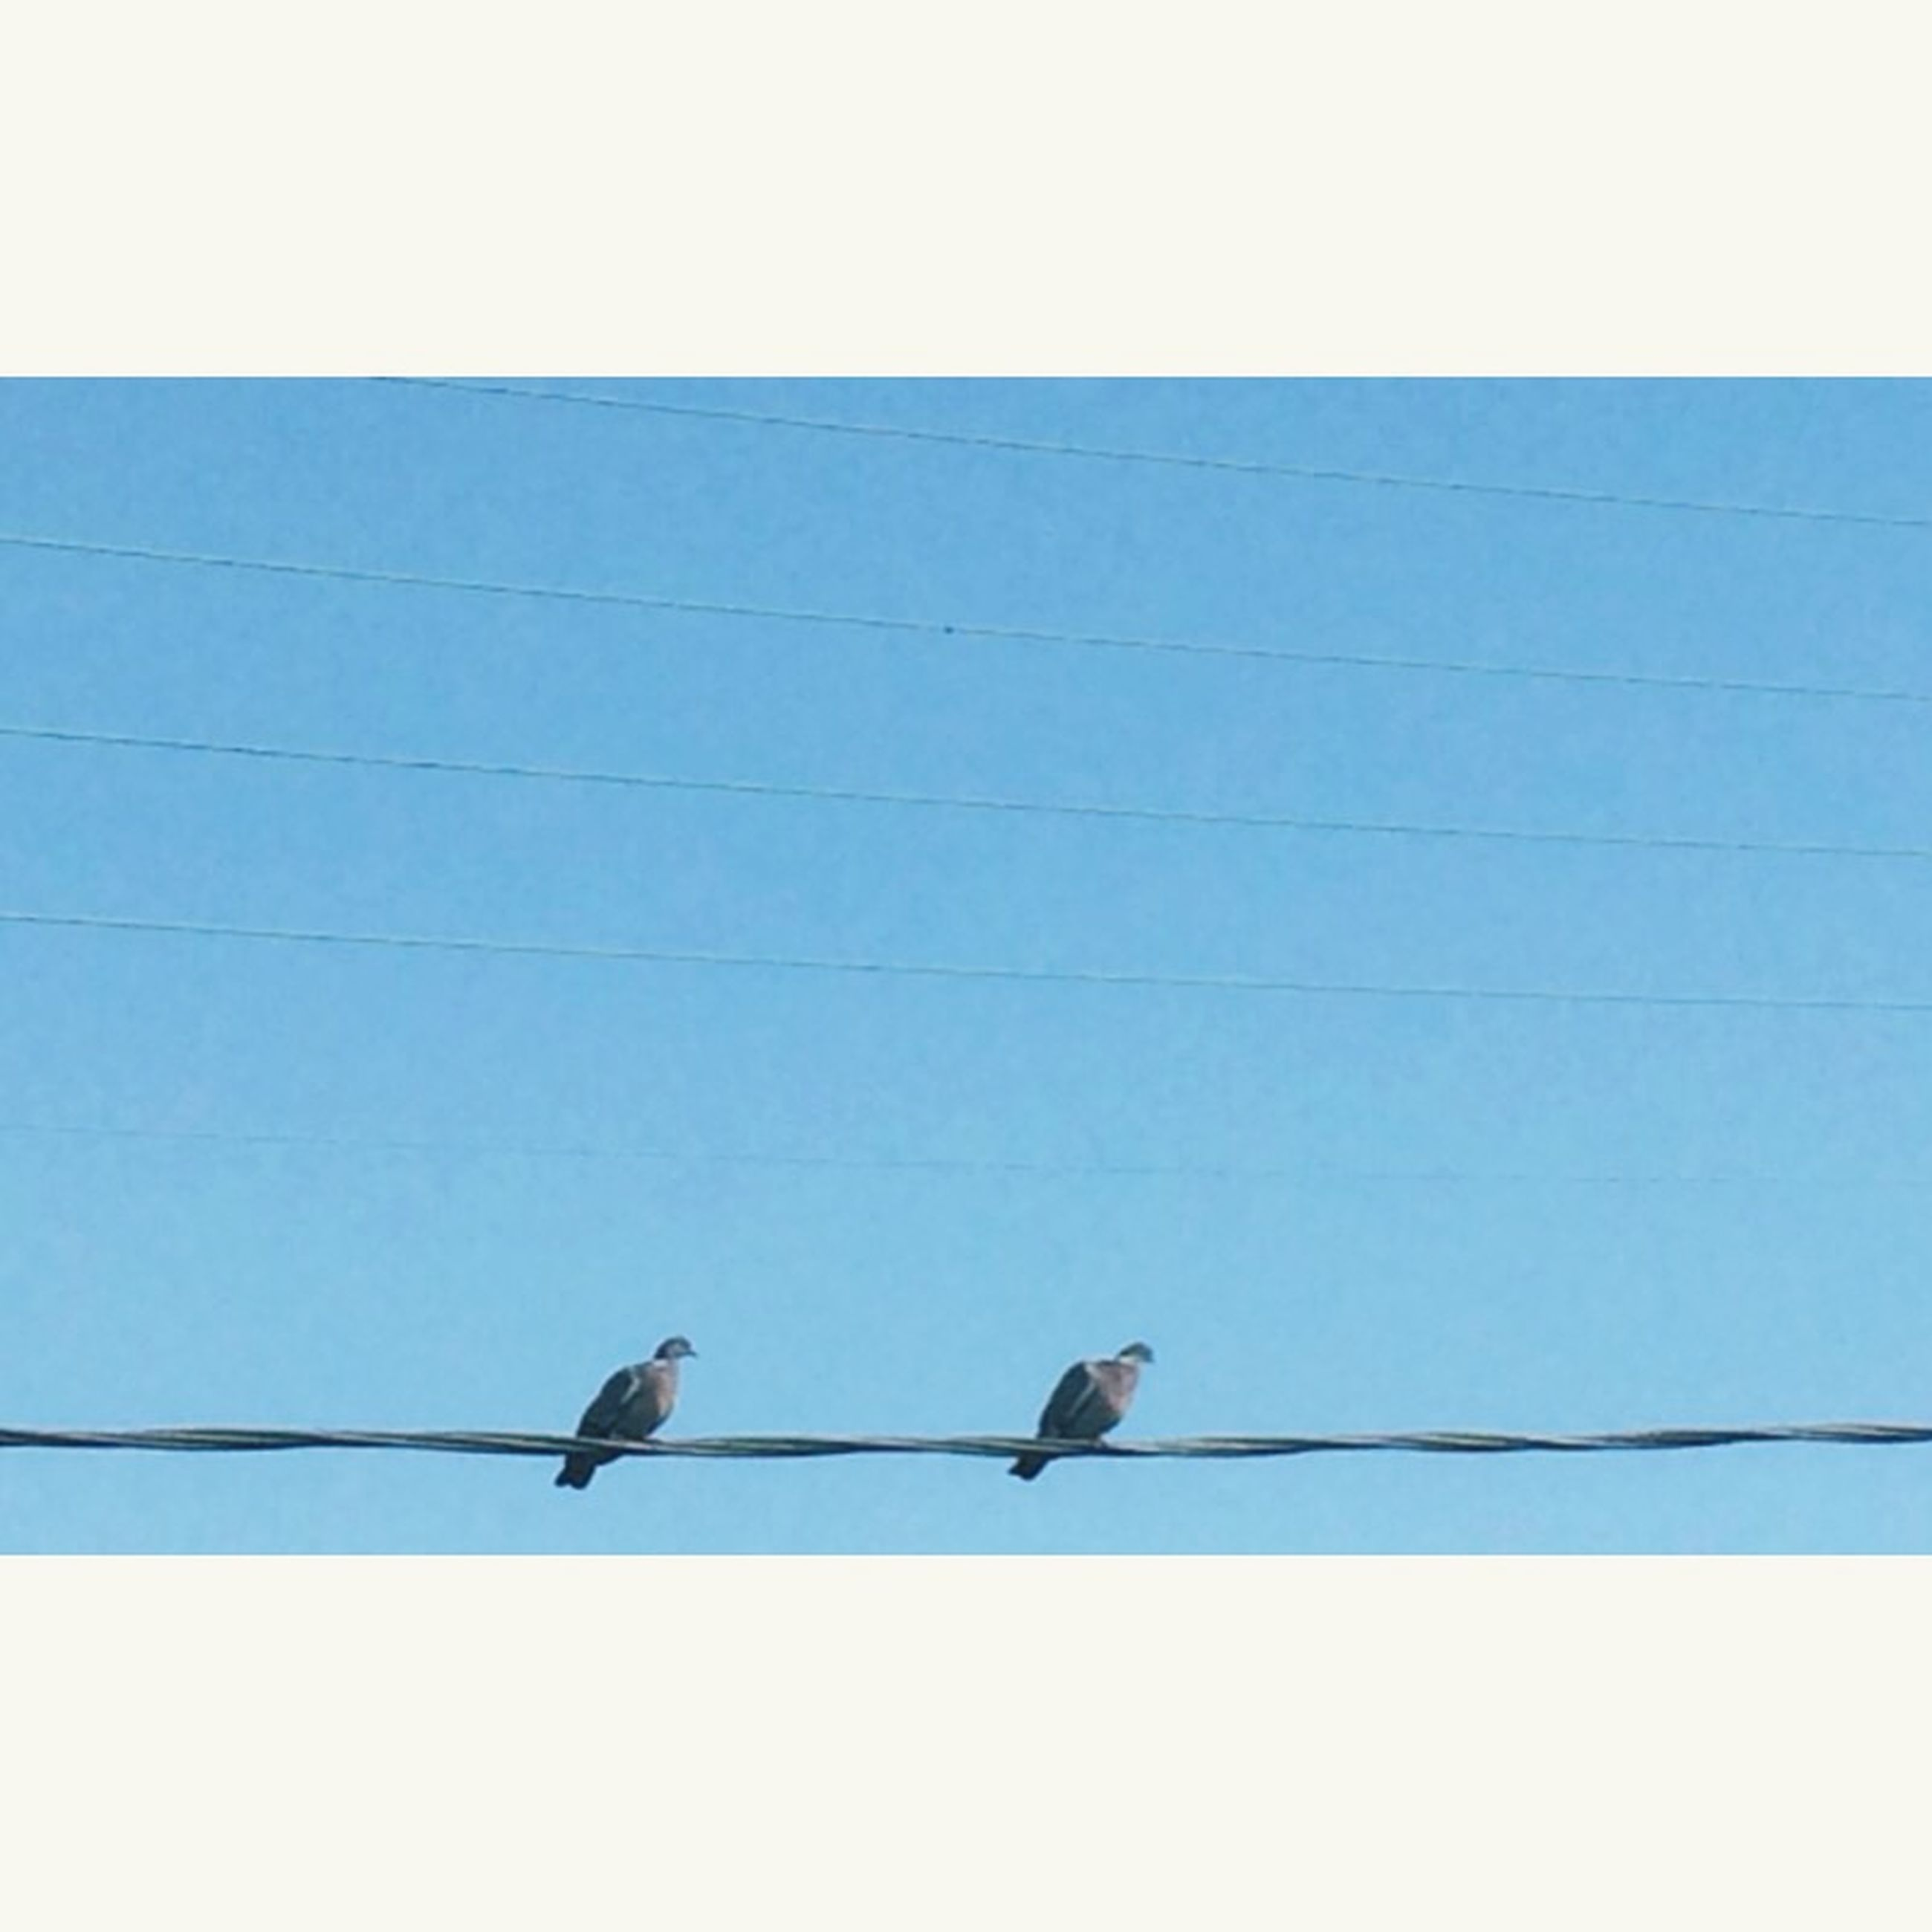 bird, animal themes, animals in the wild, wildlife, low angle view, perching, clear sky, power line, cable, blue, one animal, flying, sky, avian, copy space, zoology, day, outdoors, pigeon